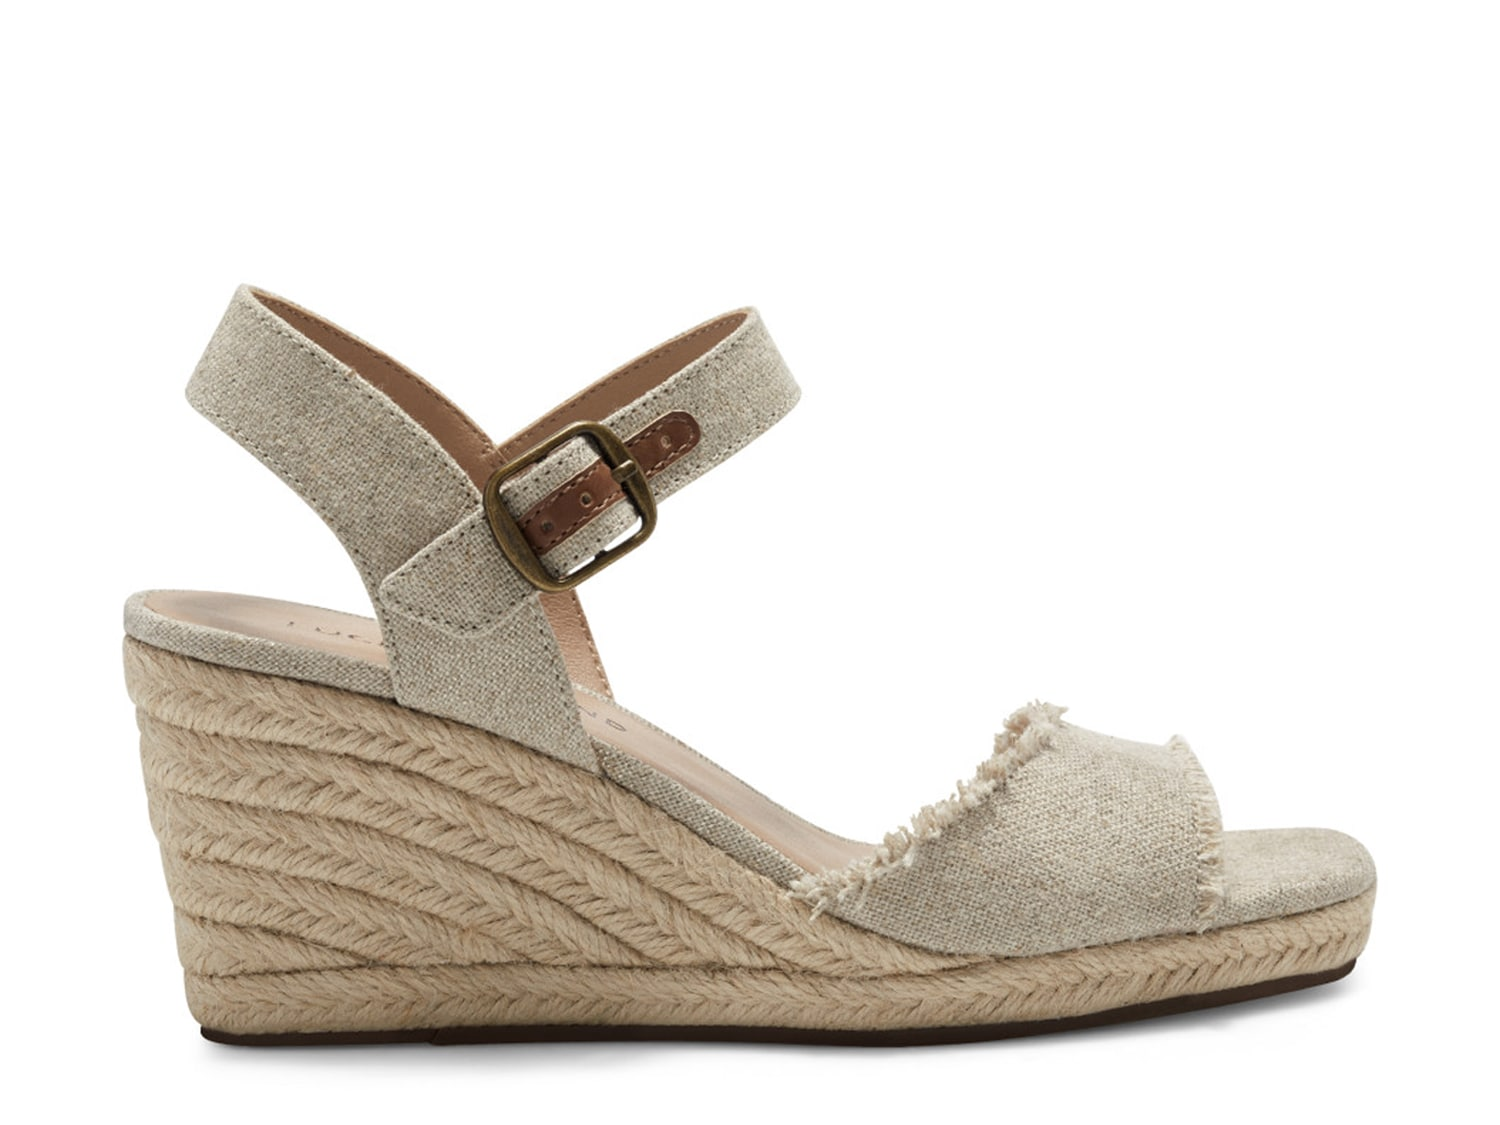 Lucky Brand Moliey Espadrille Wedge Sandal | DSW